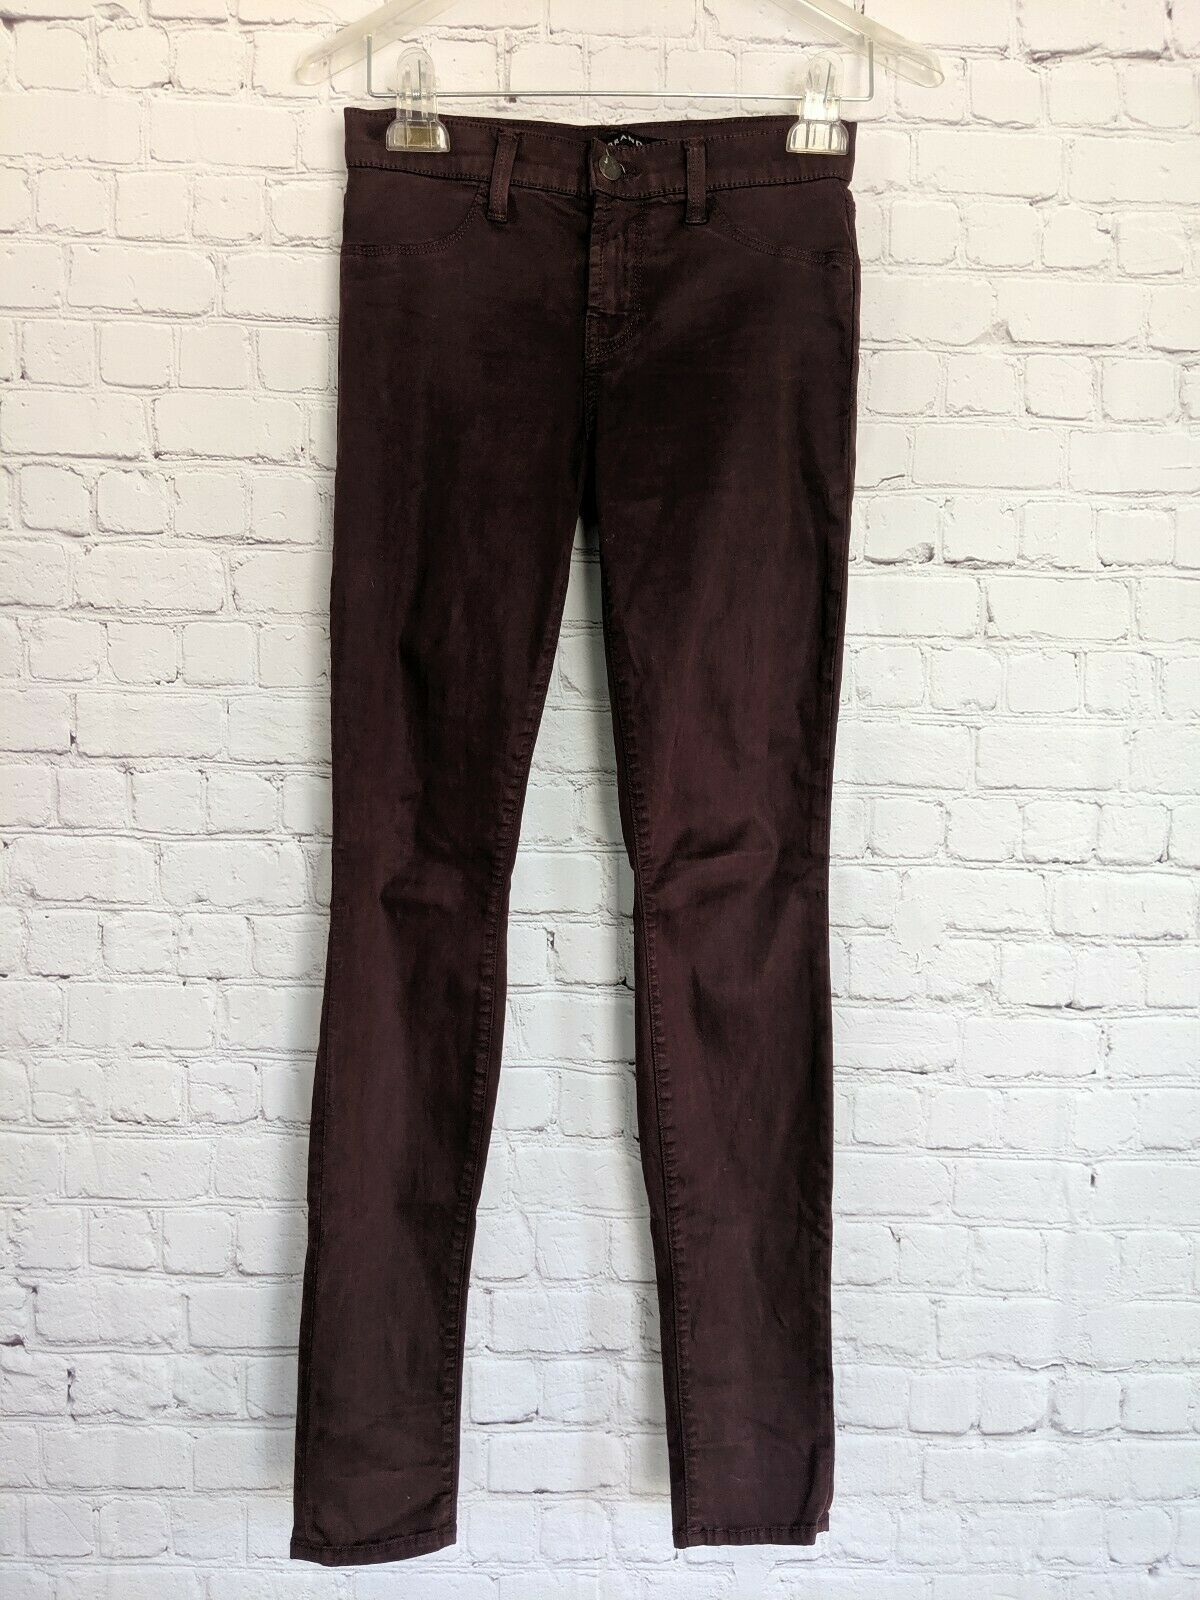 J.BRAND | Women's Size 25 Super Skinny Pinot Purple Jeans Pants Stretch image 2